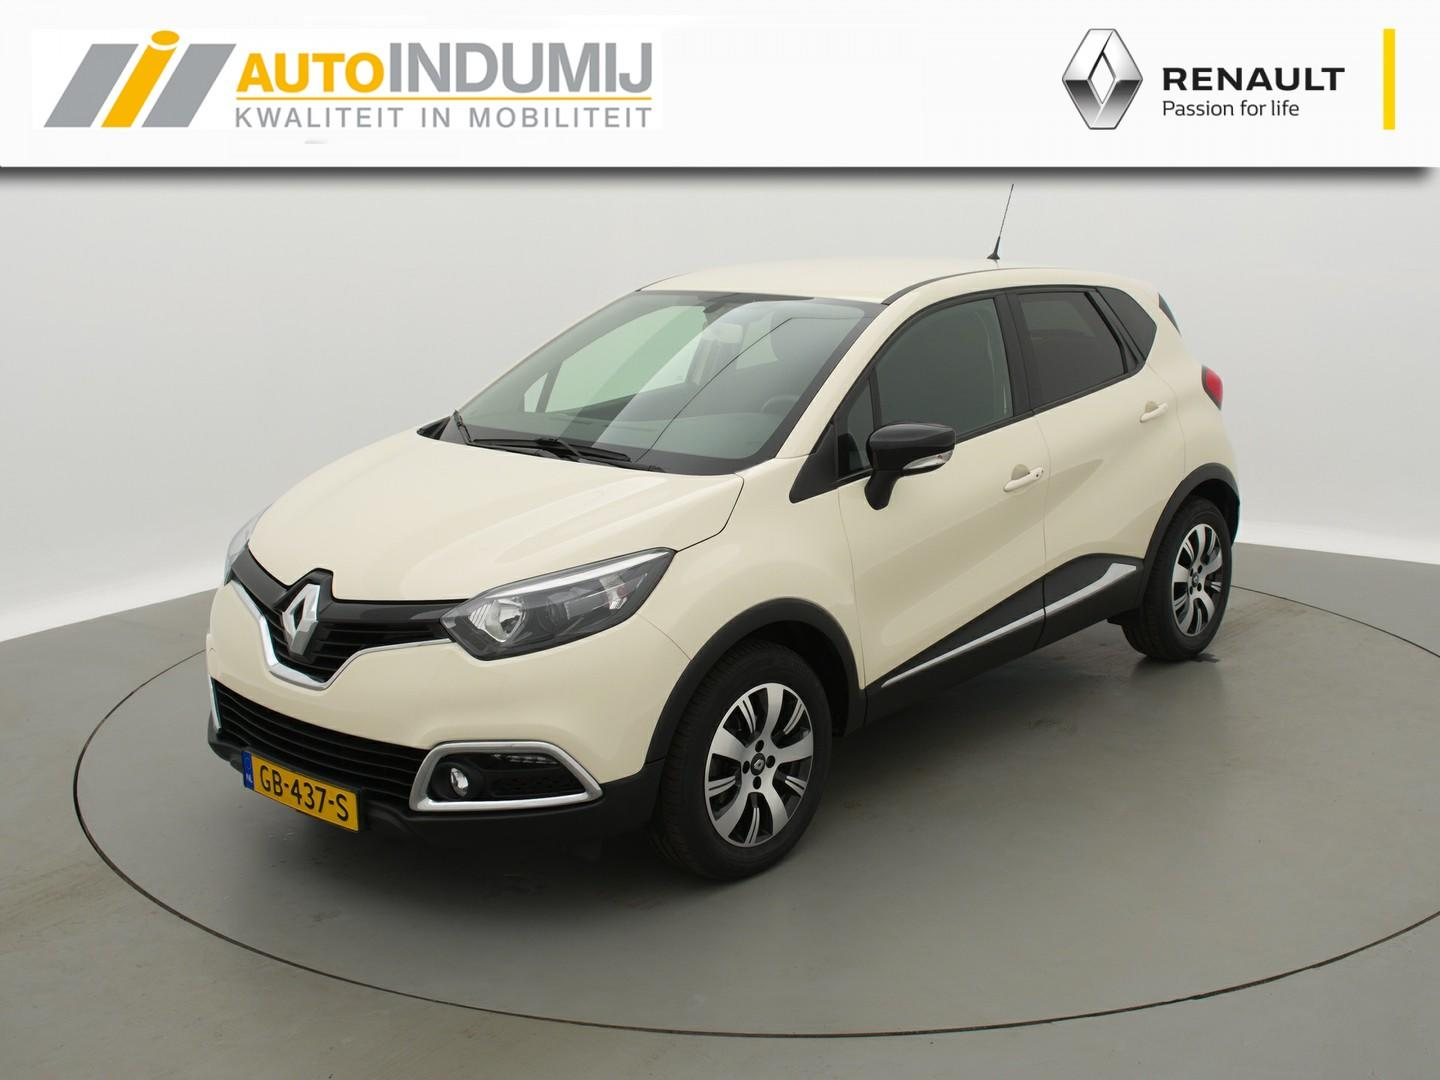 Renault Captur 0.9 tce expression / navigatie / cruise control / keyless entree